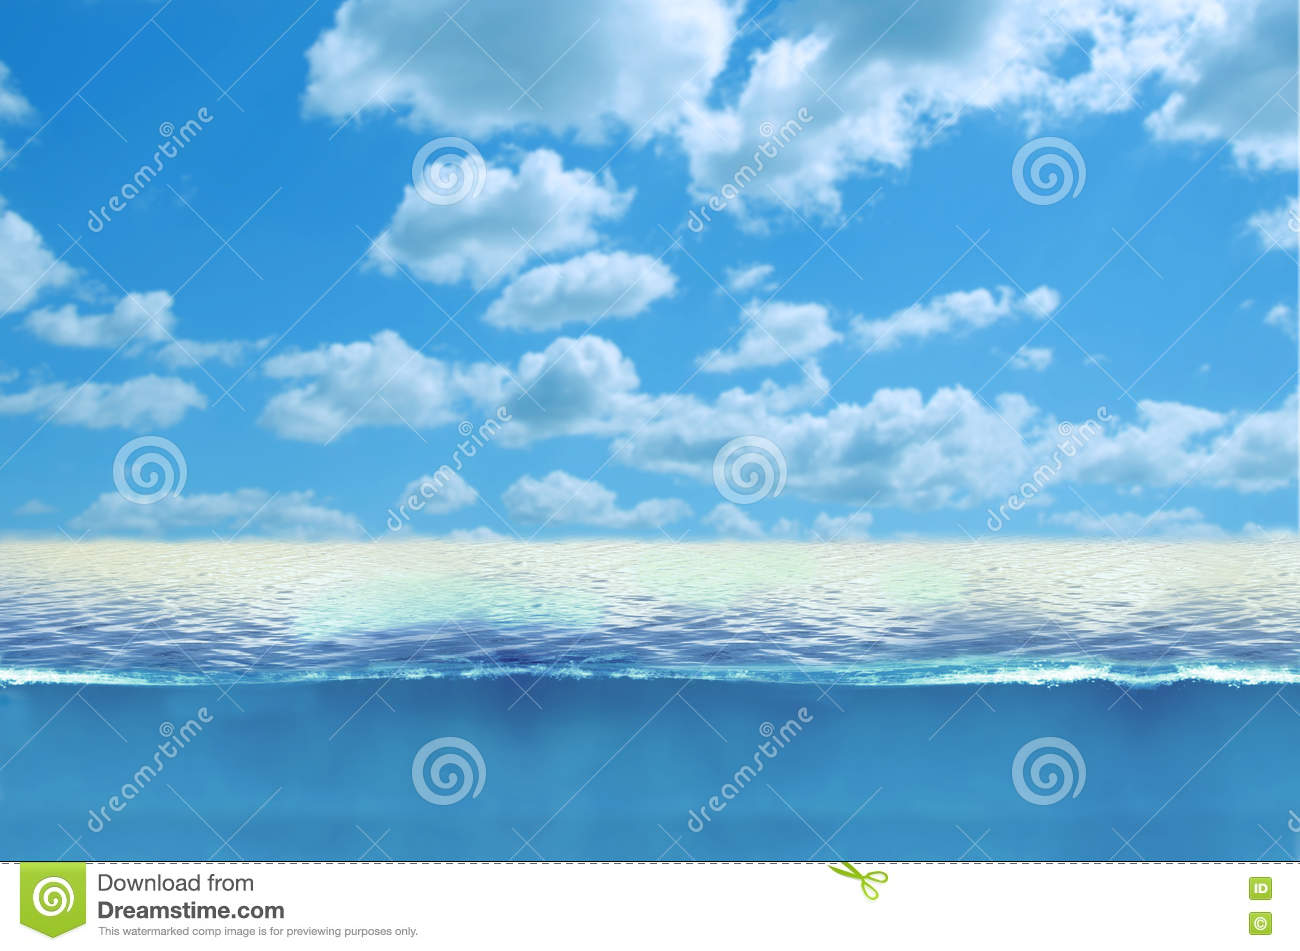 blue ocean water and blue sky with clouds stock illustration illustration of ocean background. Black Bedroom Furniture Sets. Home Design Ideas